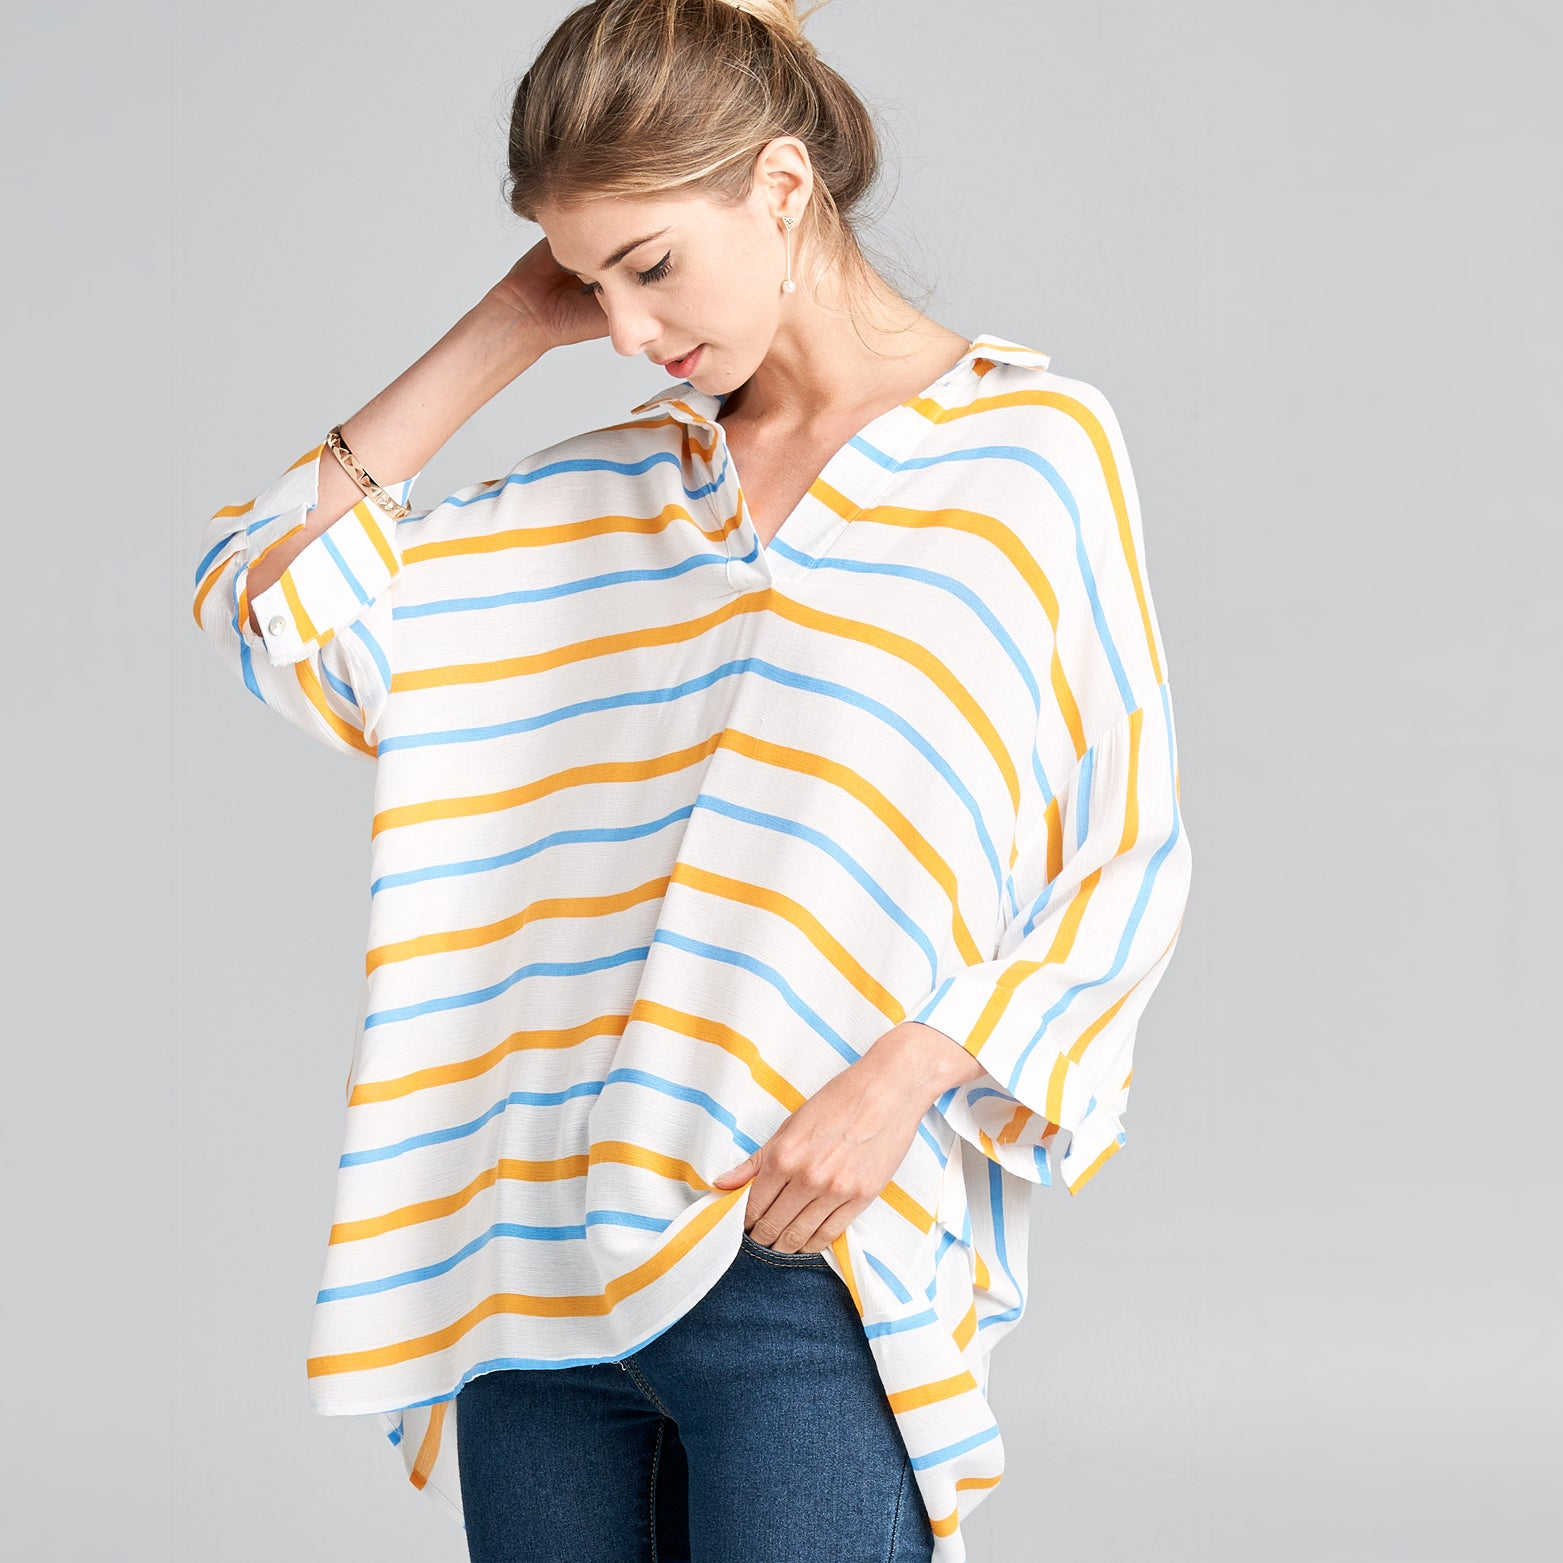 Contrast Striped Collared Top - Love, Kuza